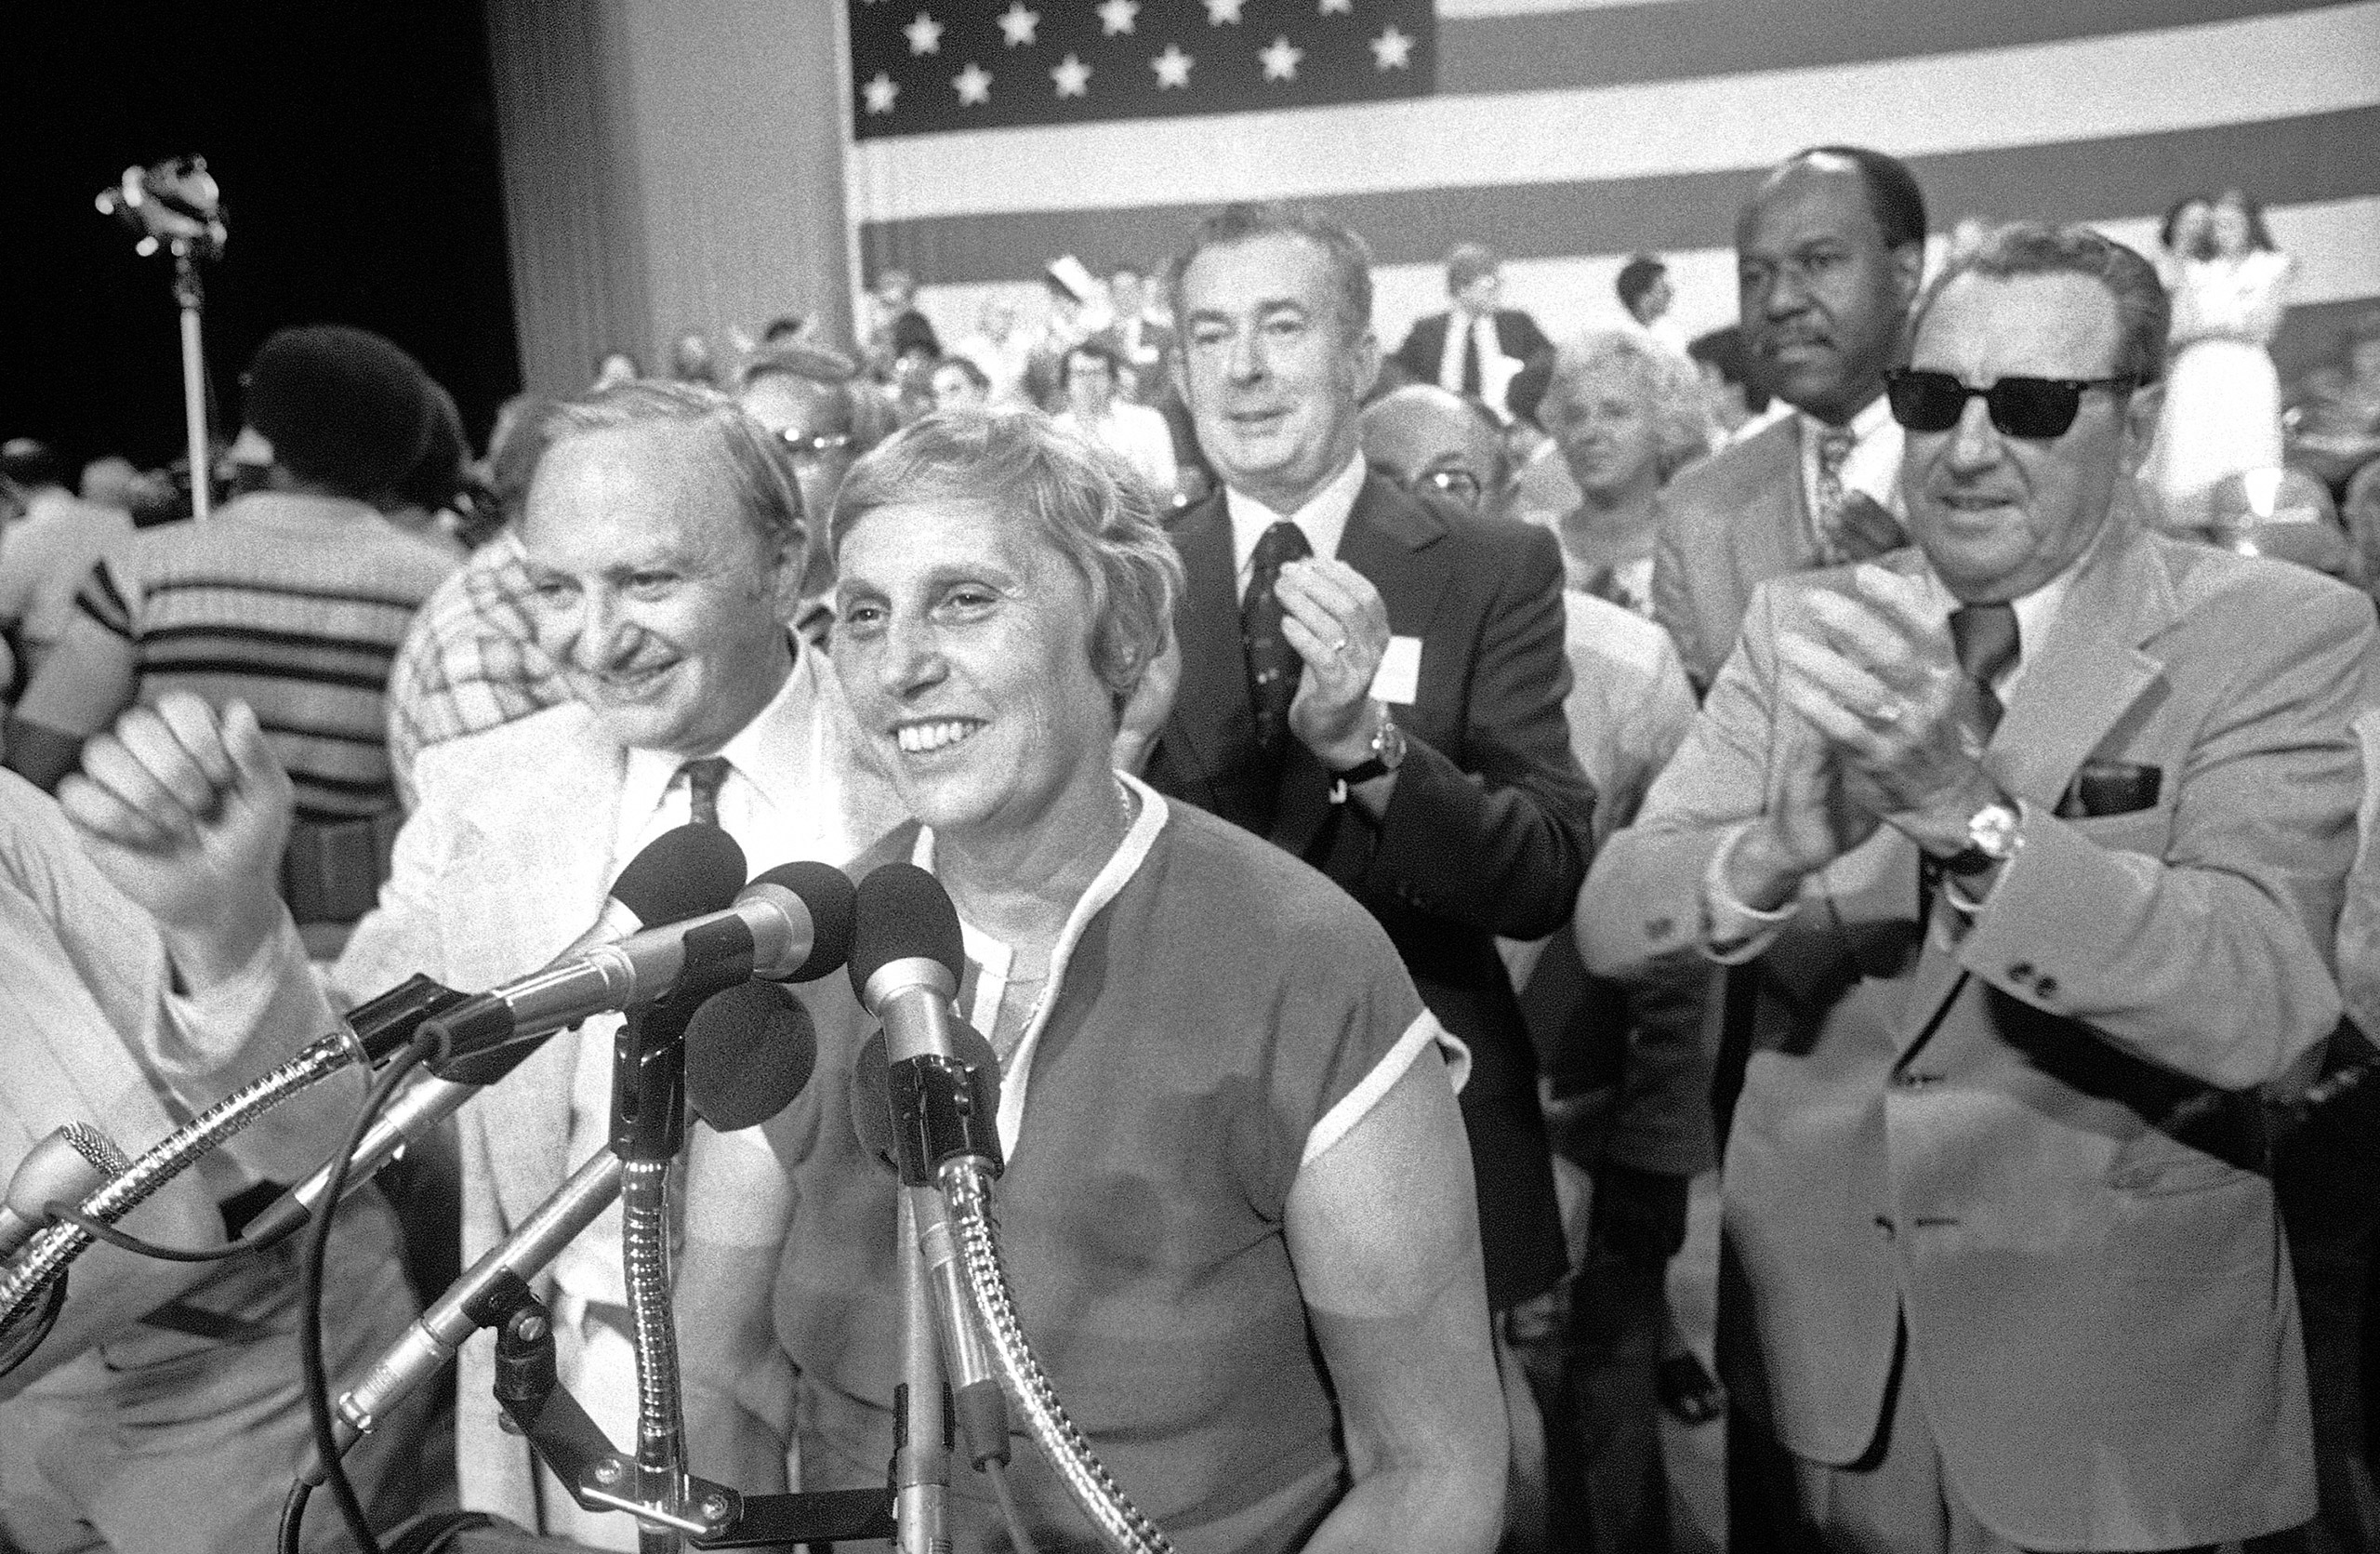 Gov. Ella T. Grasso receives the applause of the crowd as she began her acceptance speech as the party-endorsed gubernatorial candidate at the Democratic Party state nominating convention in Hartford, Connecticut on Saturday, July 22, 1978.